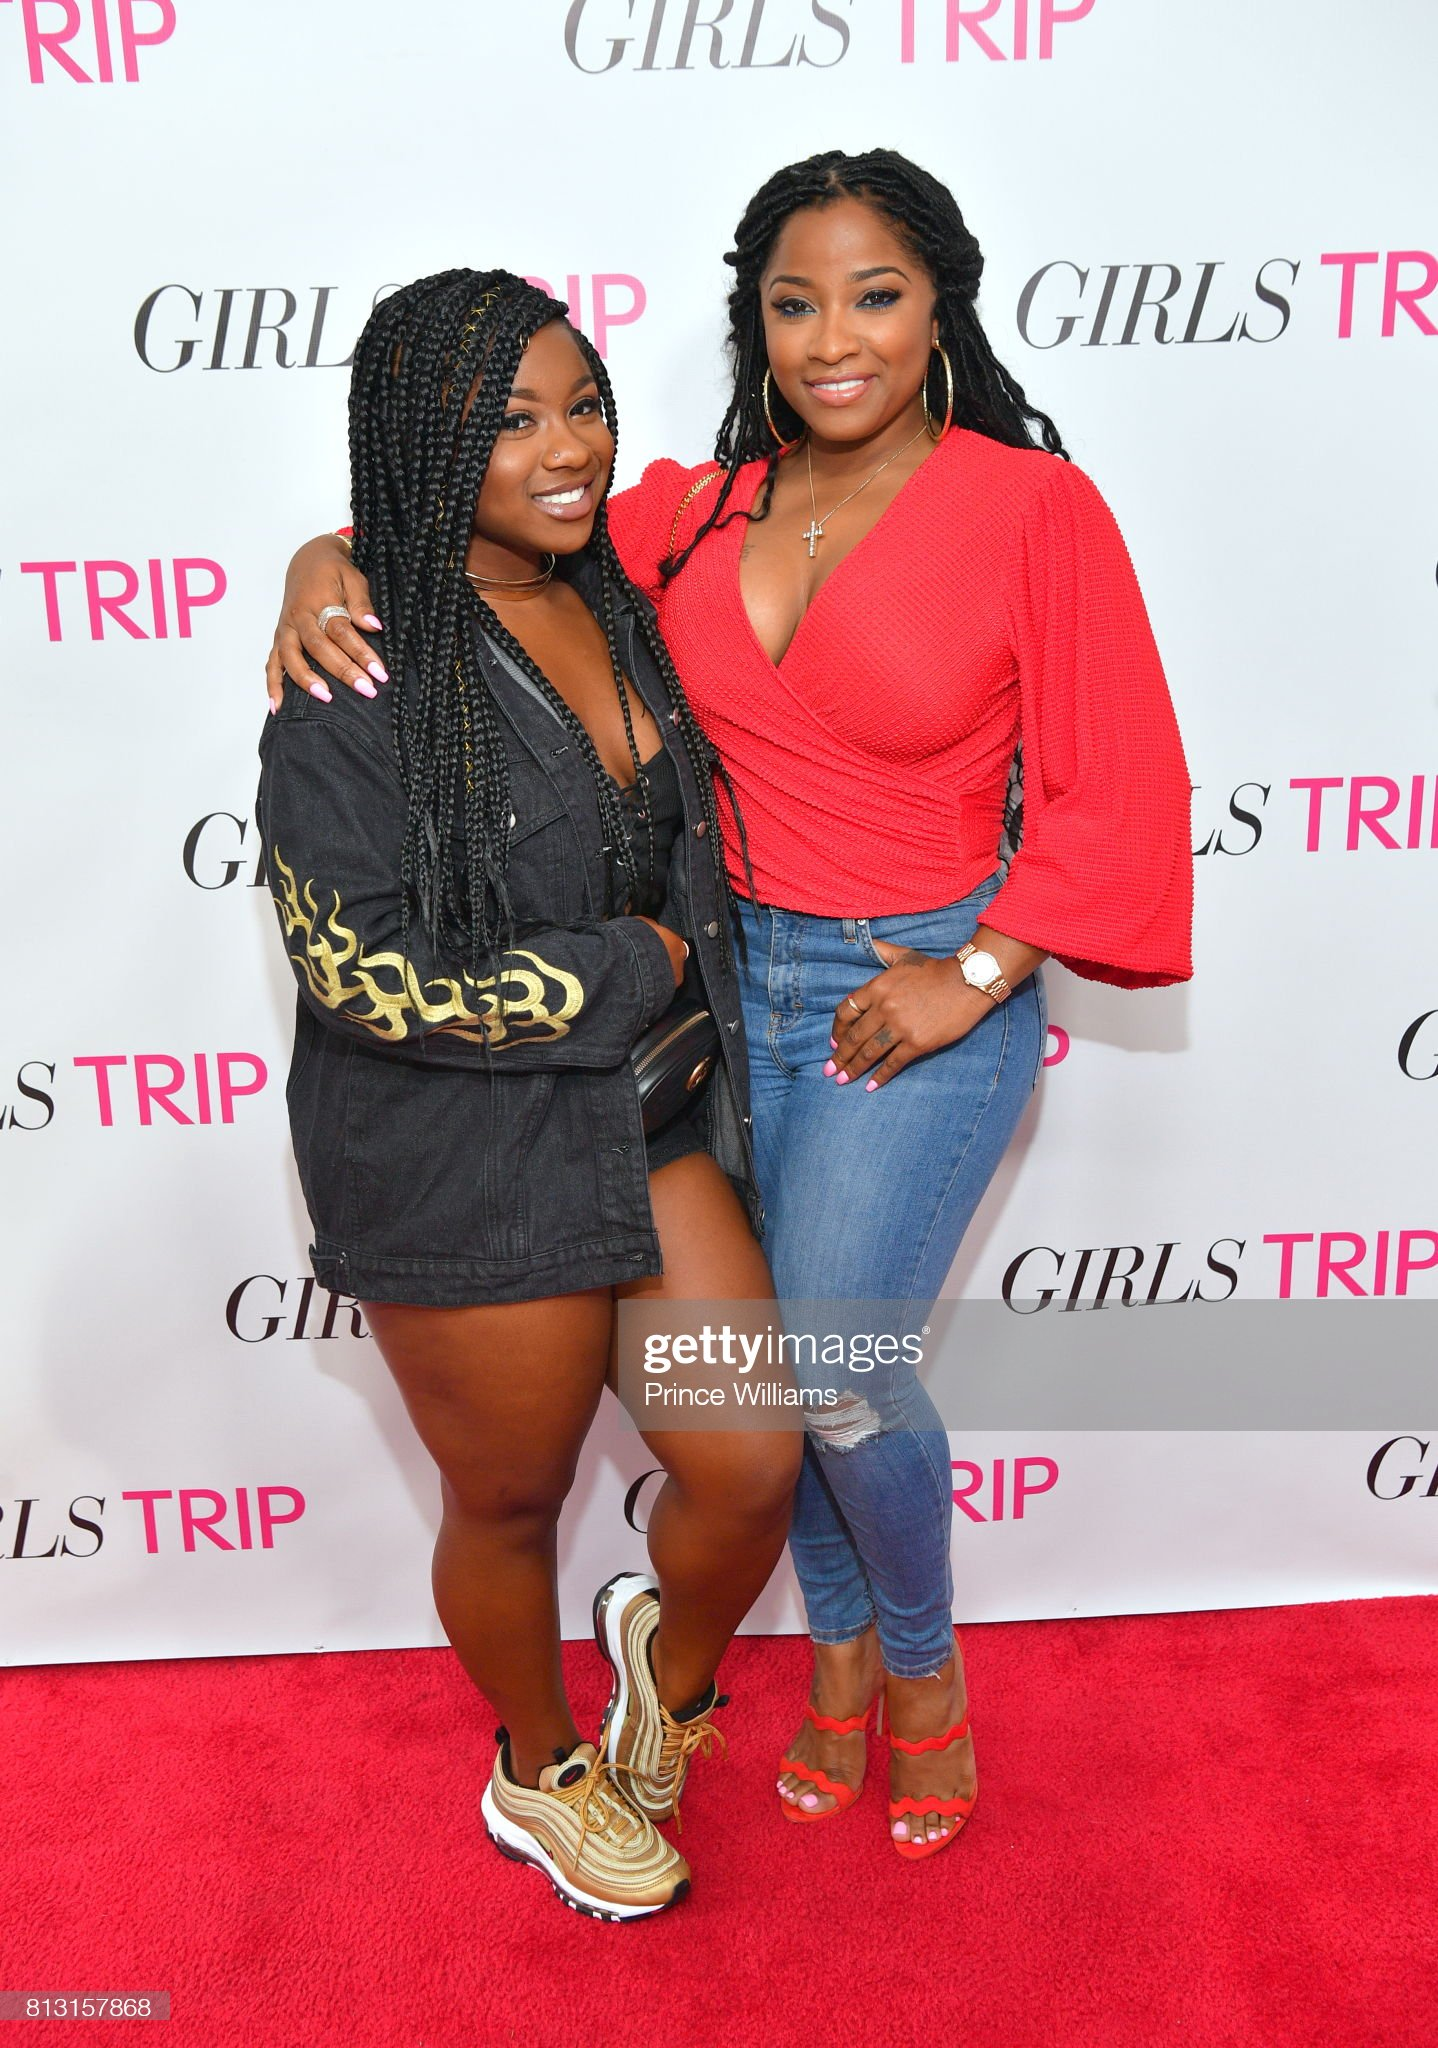 ¿Cuánto mide Toya Wright (Antonia)? - Real height Reginae-carter-and-antonia-toya-carter-attend-girls-trip-atlanta-at-picture-id813157868?s=2048x2048